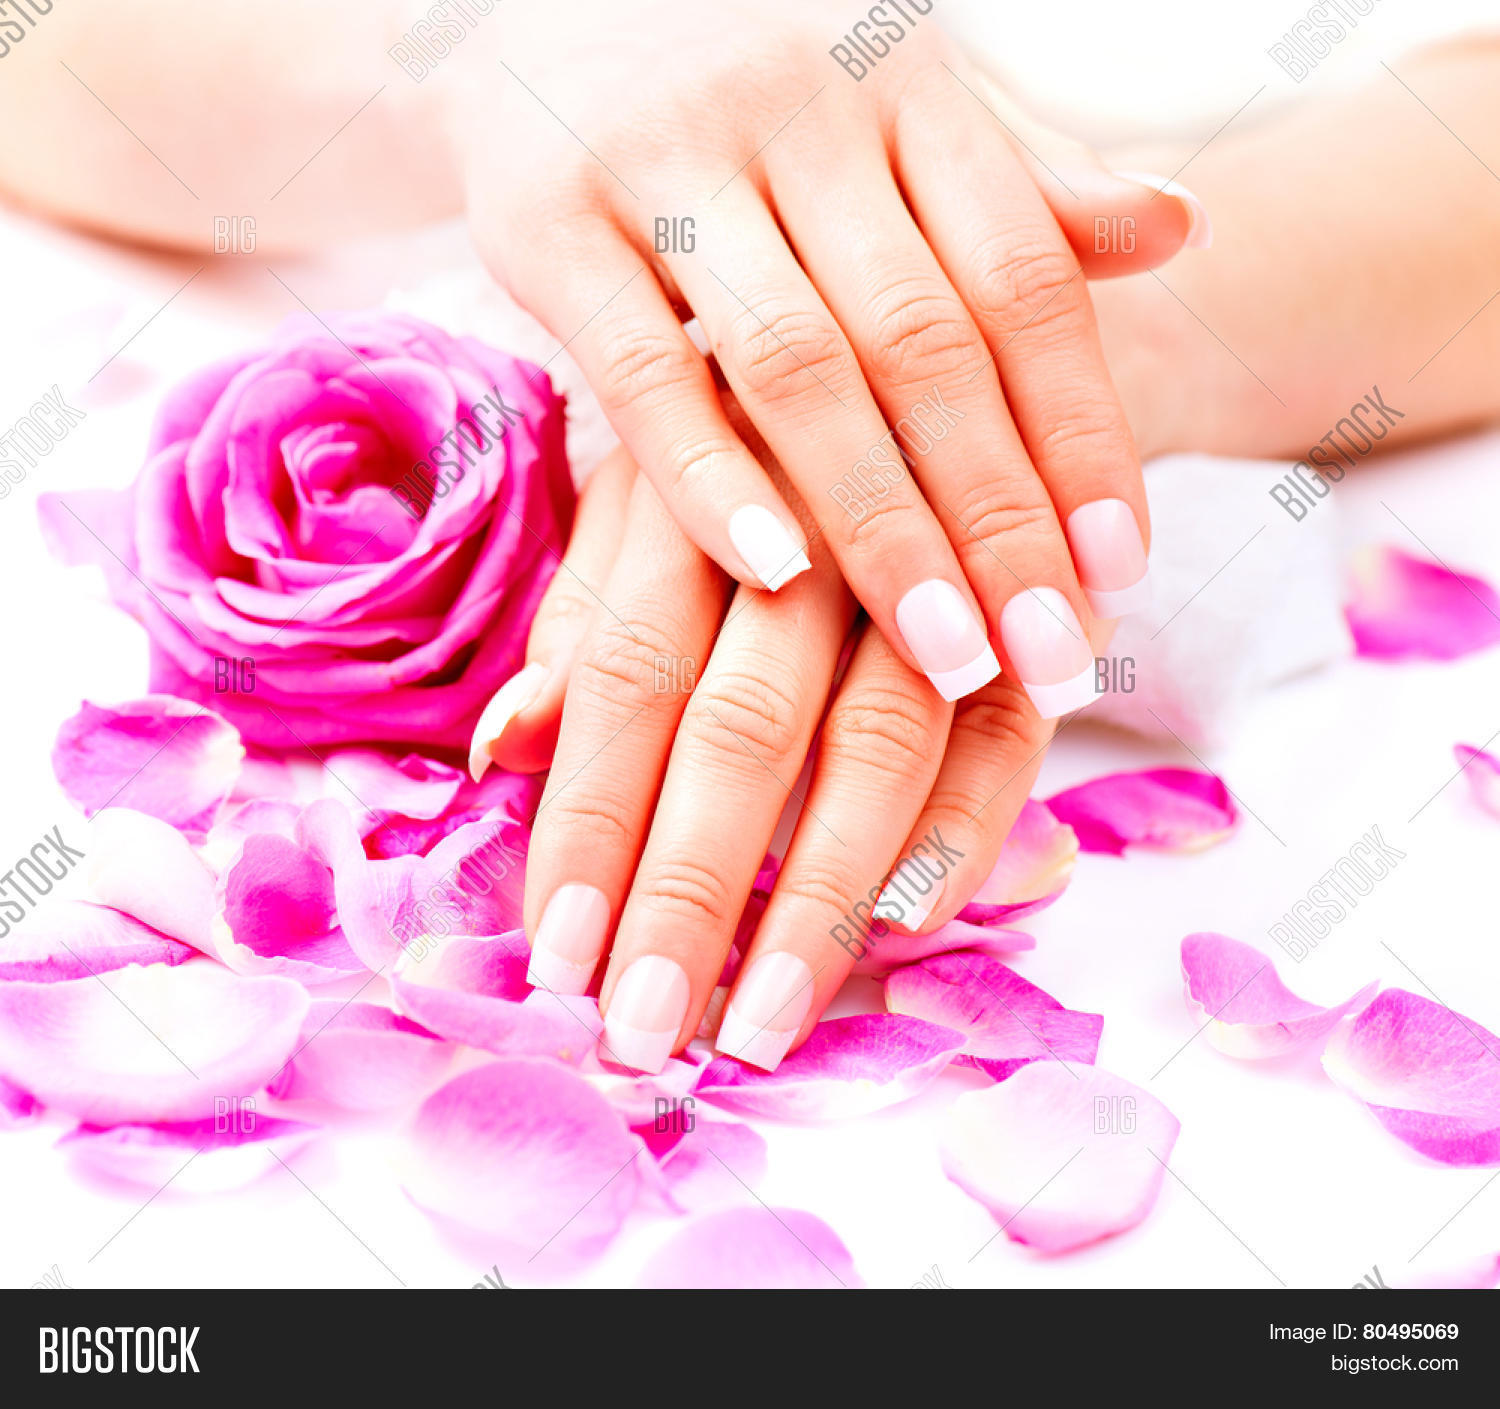 Manicure, Hands Spa. Image & Photo (Free Trial) | Bigstock